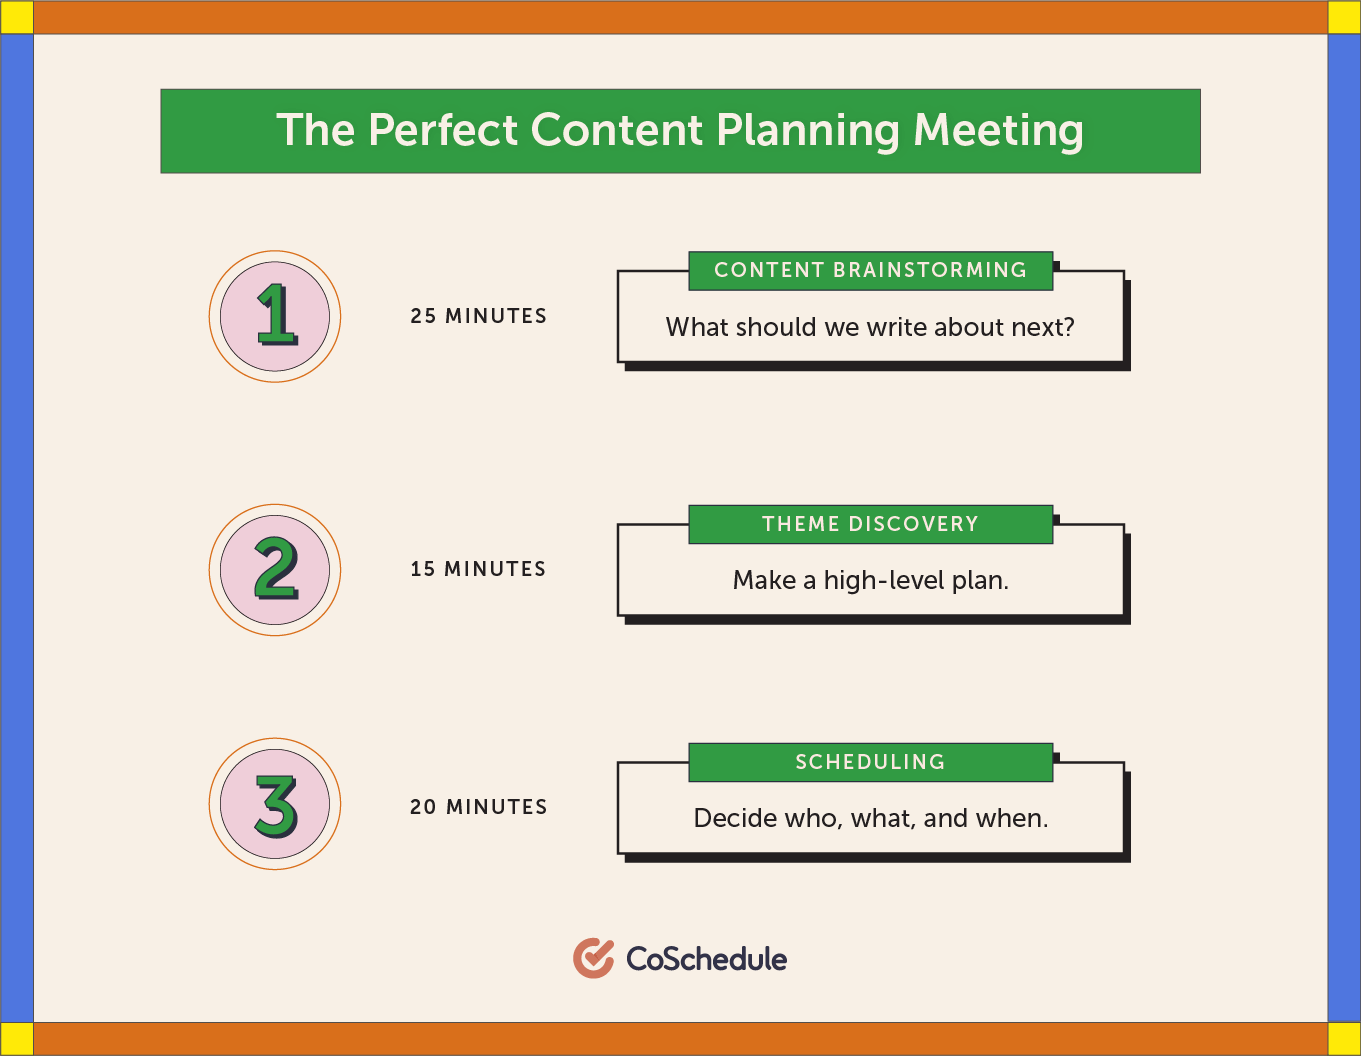 The perfect content planning meeting